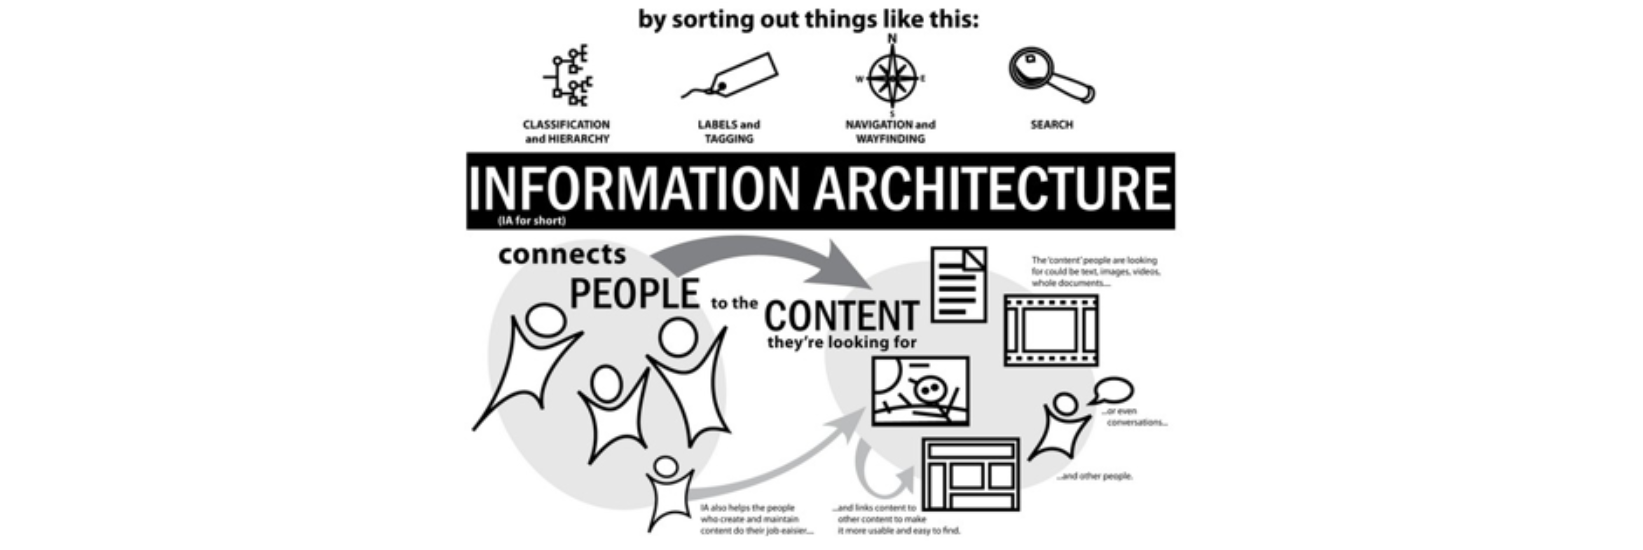 A diagram explaining how information architecture connects people to content they are looking for.